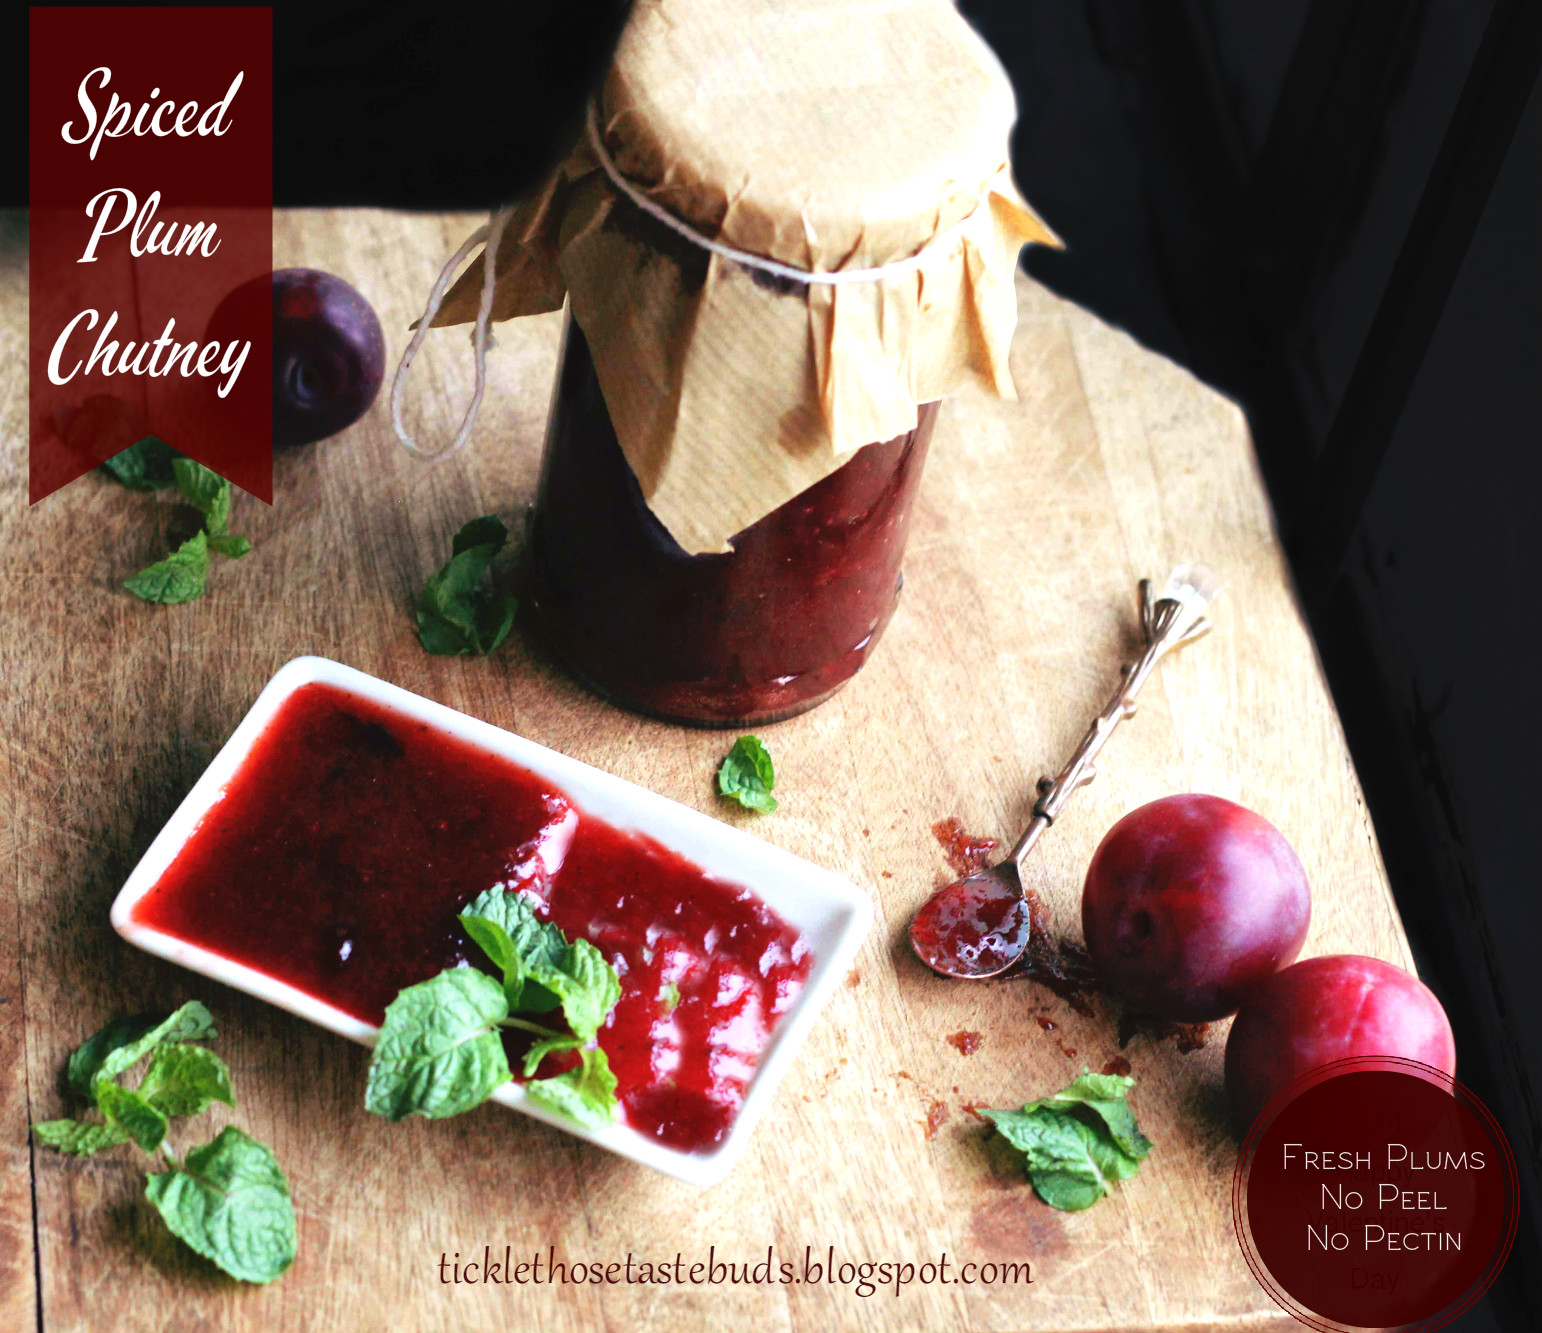 Spiced-Plum-Chutney-Recipe-ticklethosetastebuds